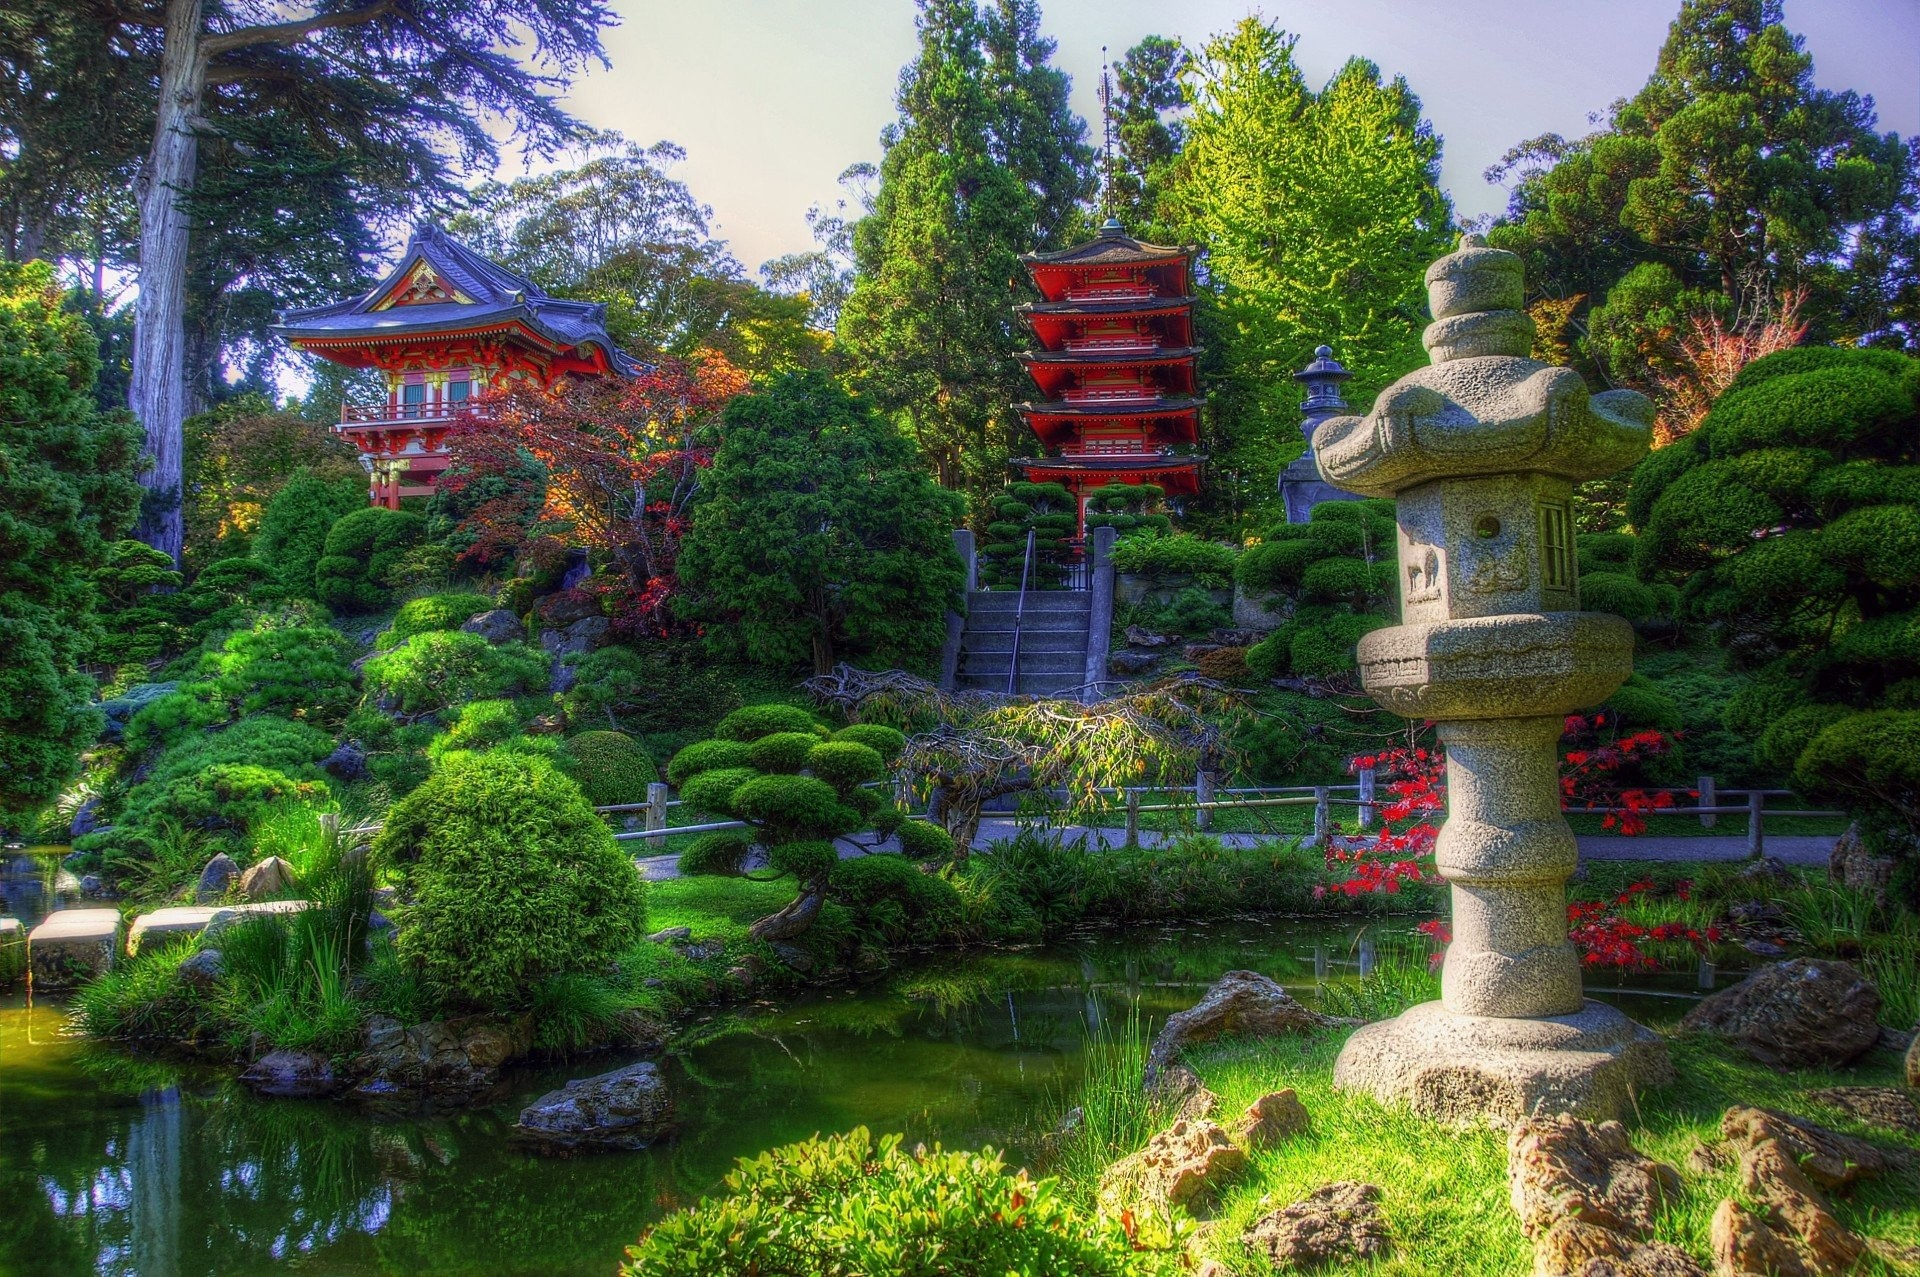 Wallpaper Japanischer Garten Japanese Garden Hd Wallpaper 57 43 Images